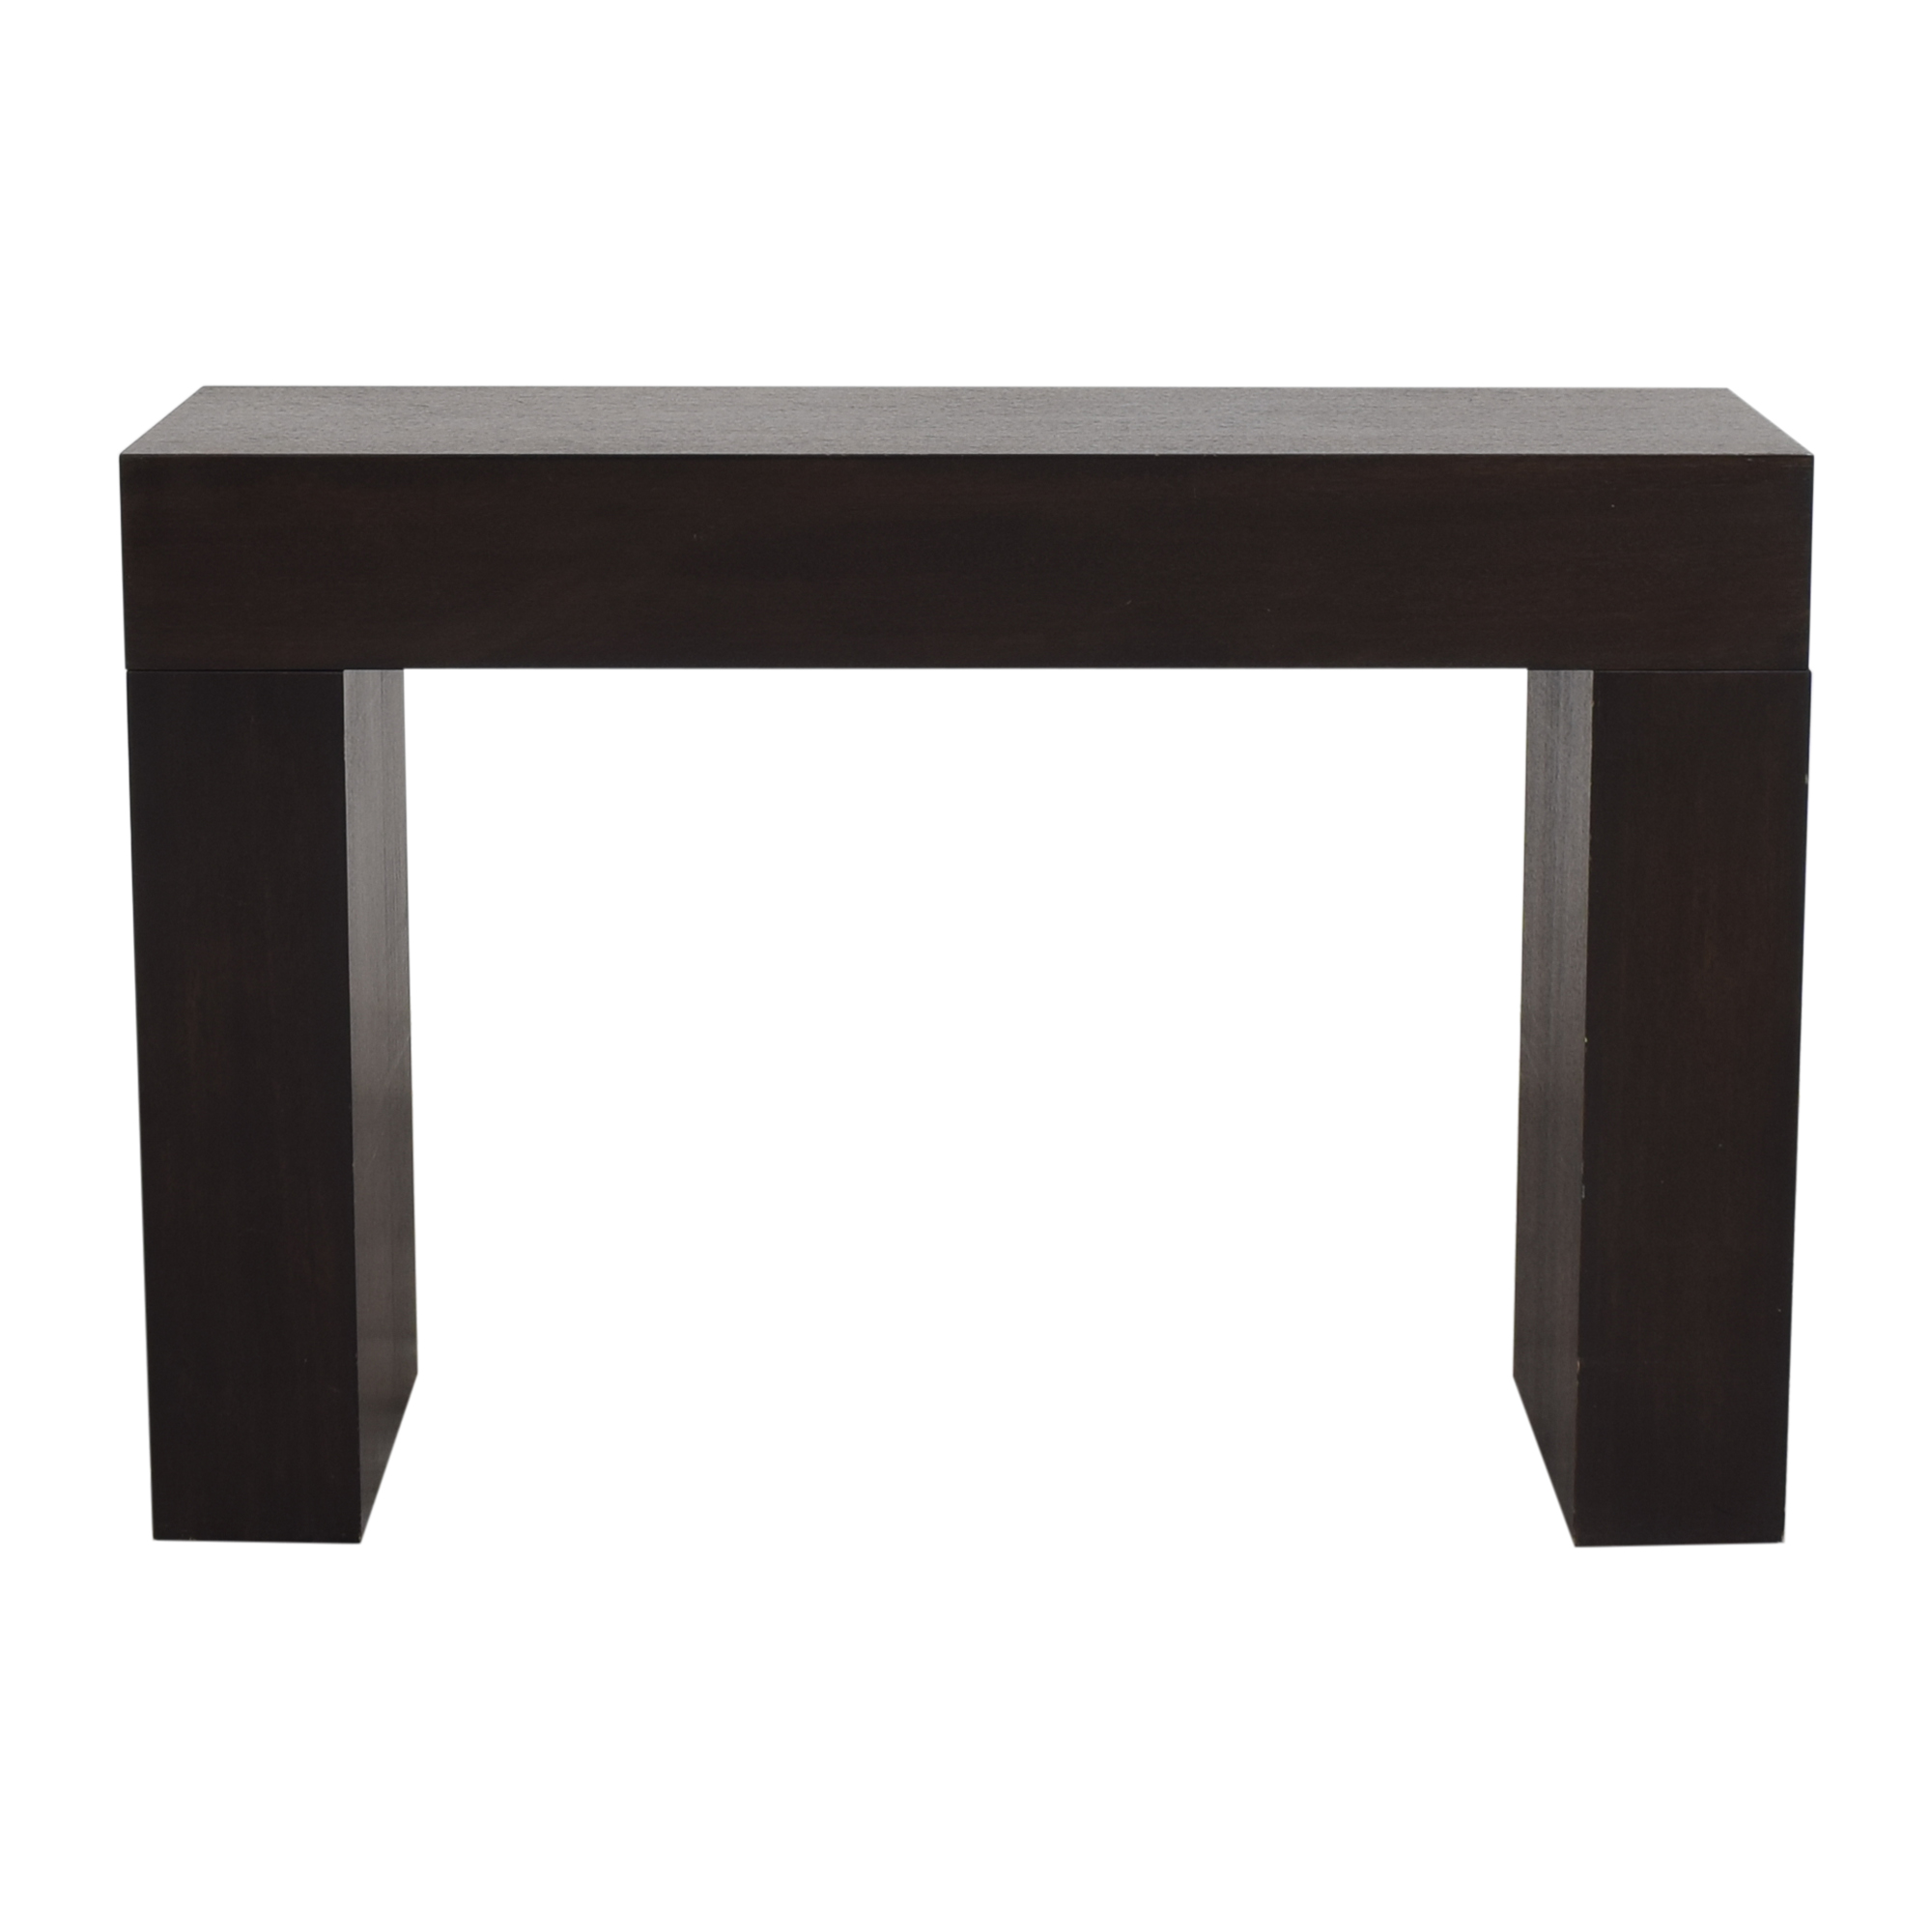 West Elm West Elm Chunky Console Table second hand